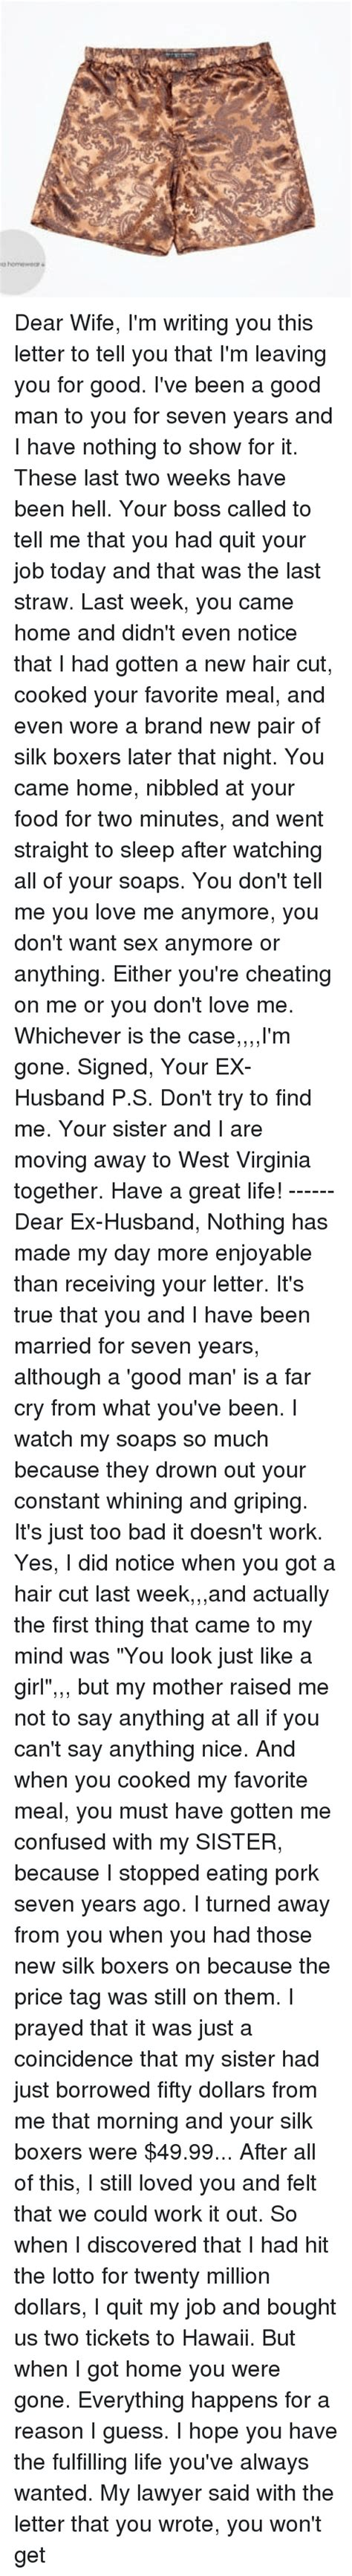 sex letters to my husband 25 best memes about im im memes 24826 | dear wife im writing you this letter to tell you 28161153